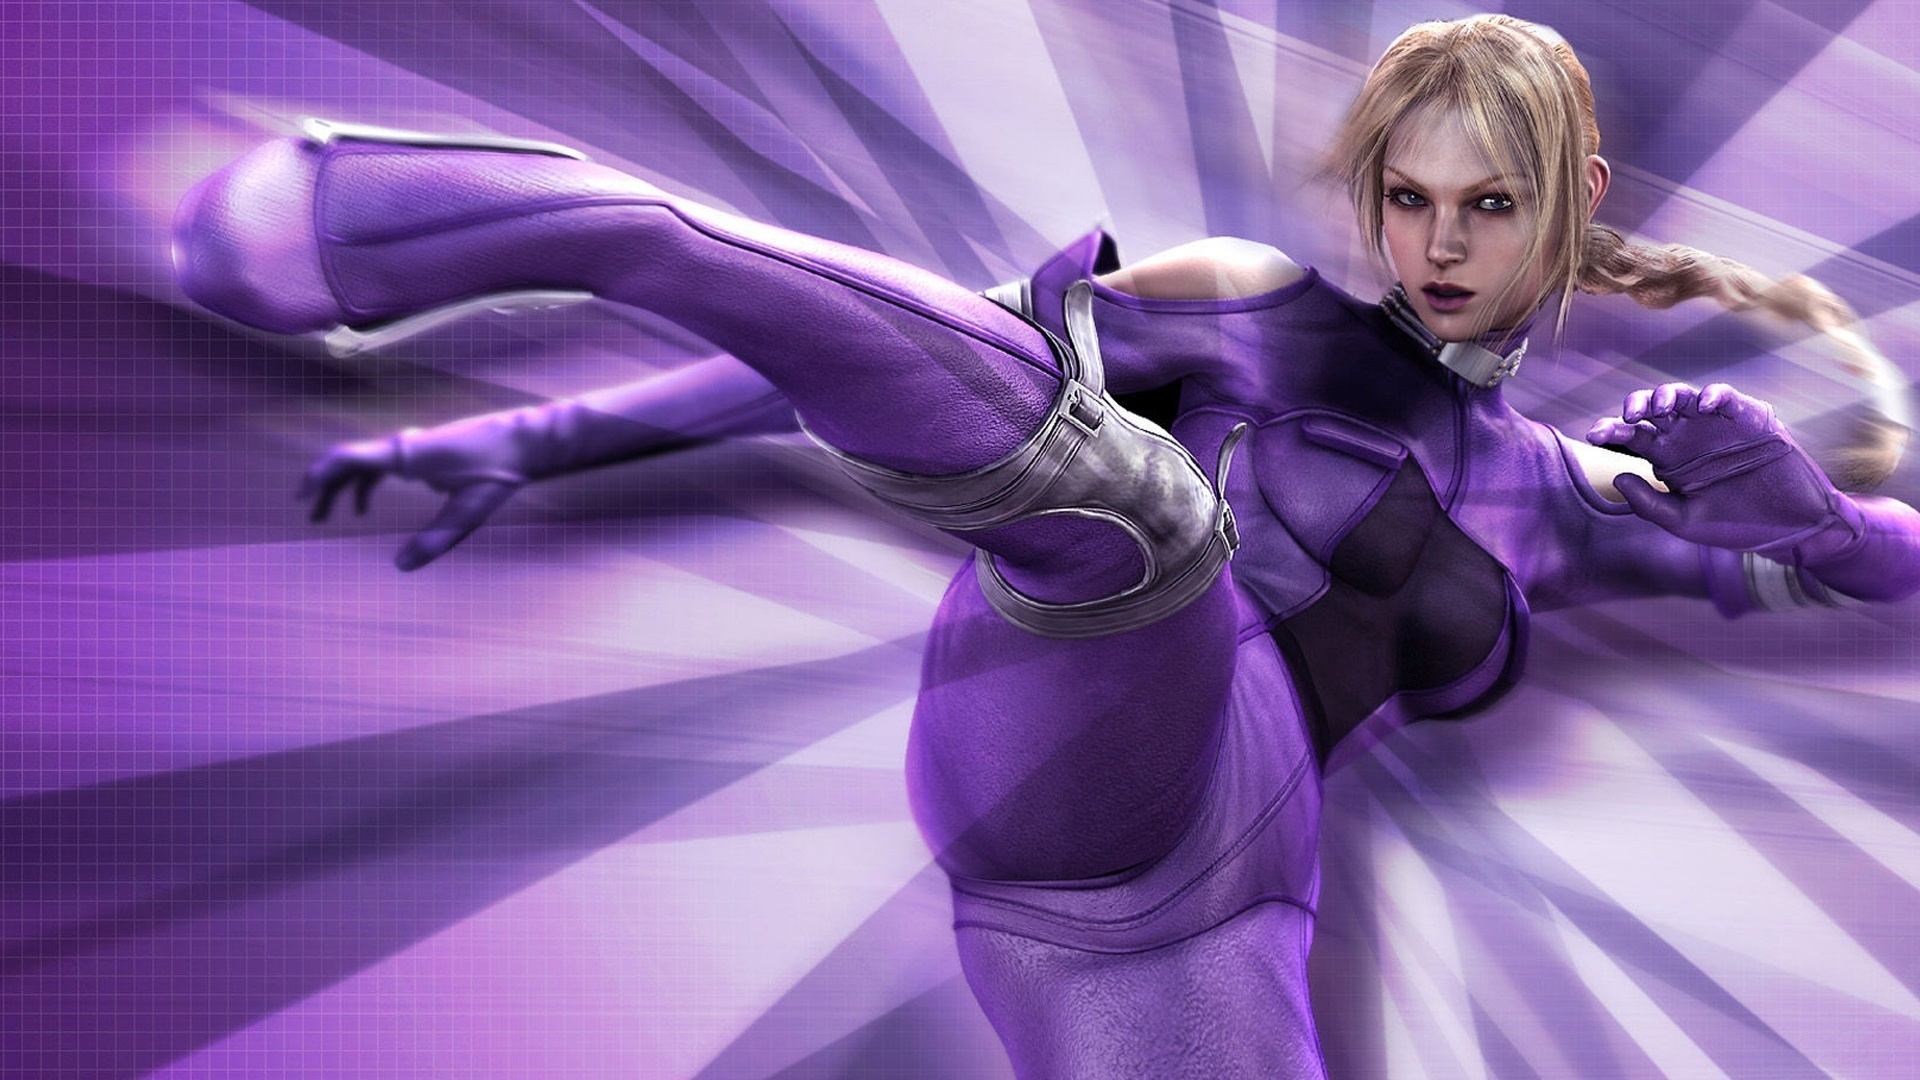 Nina Williams Workout 1